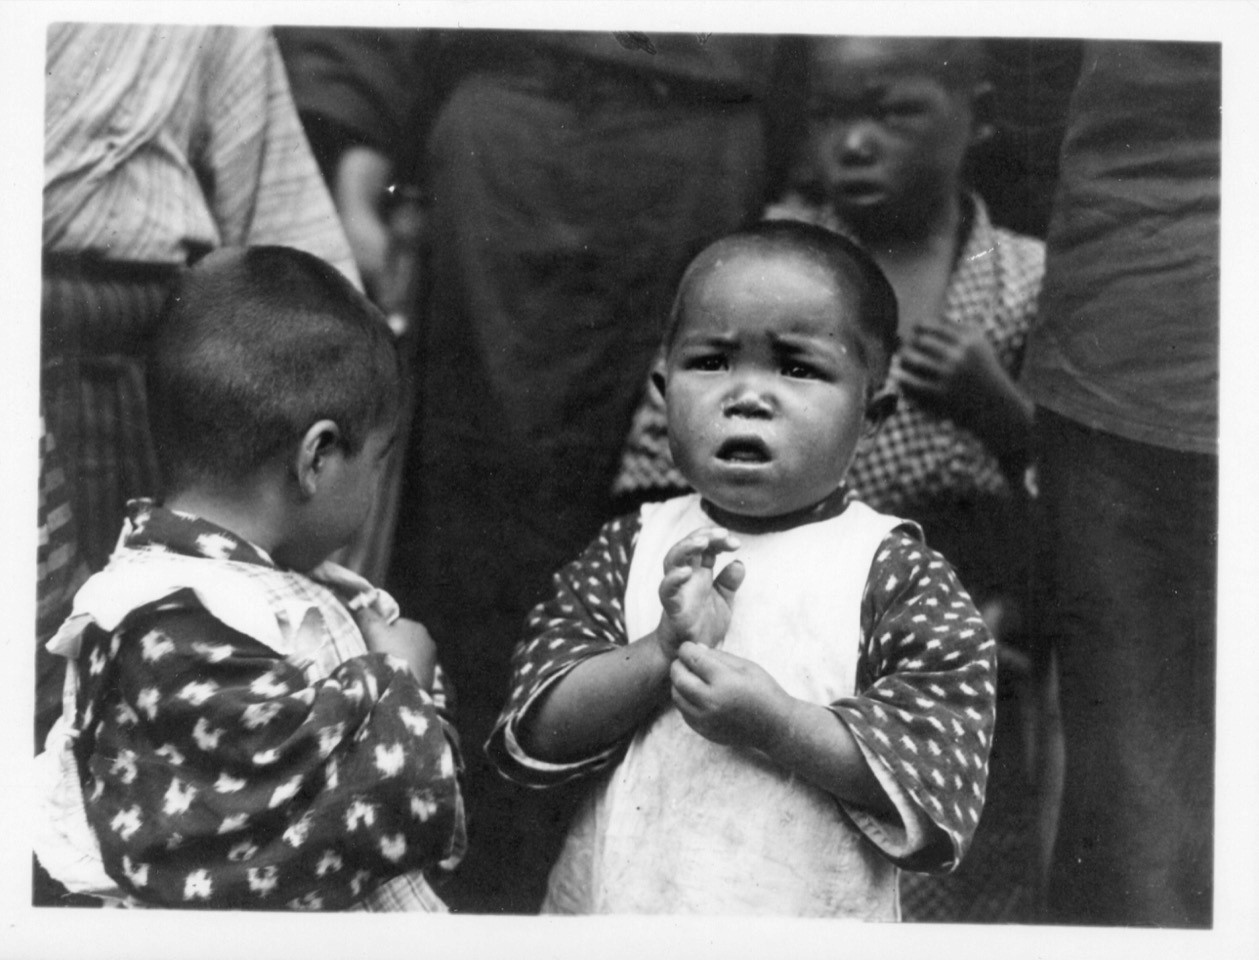 Kindergarten survivors of Hiroshima in 1946, Japan. PHOTO: RICHARD BAKER/WORLD OUTLOOK, GENERAL COMMISSION ON ARCHIVES AND HISTORY